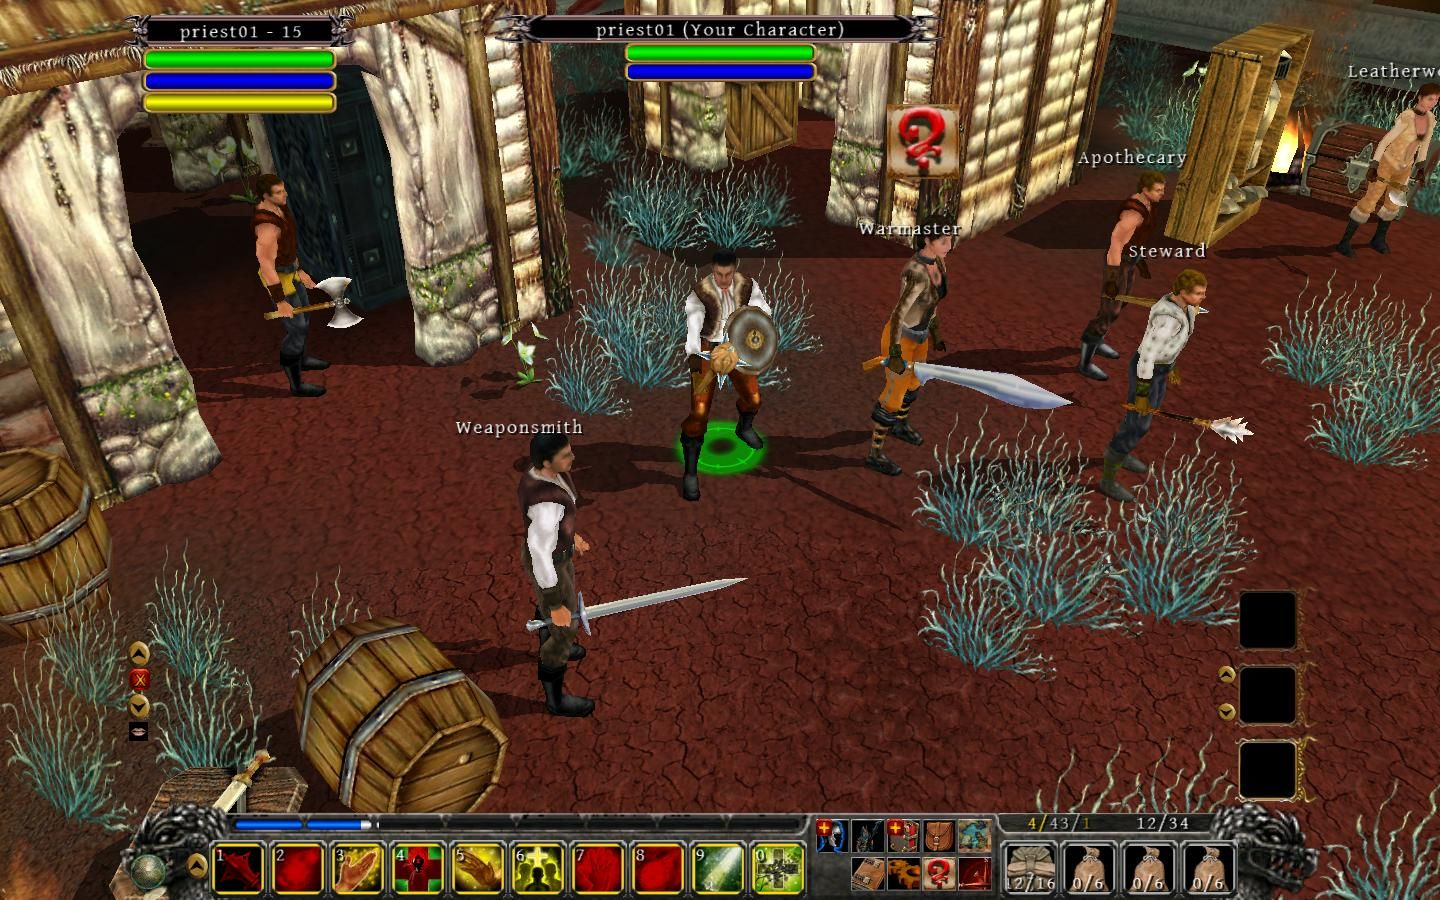 A screenshot of your character meeting the weaponsmith in Din's Curse.